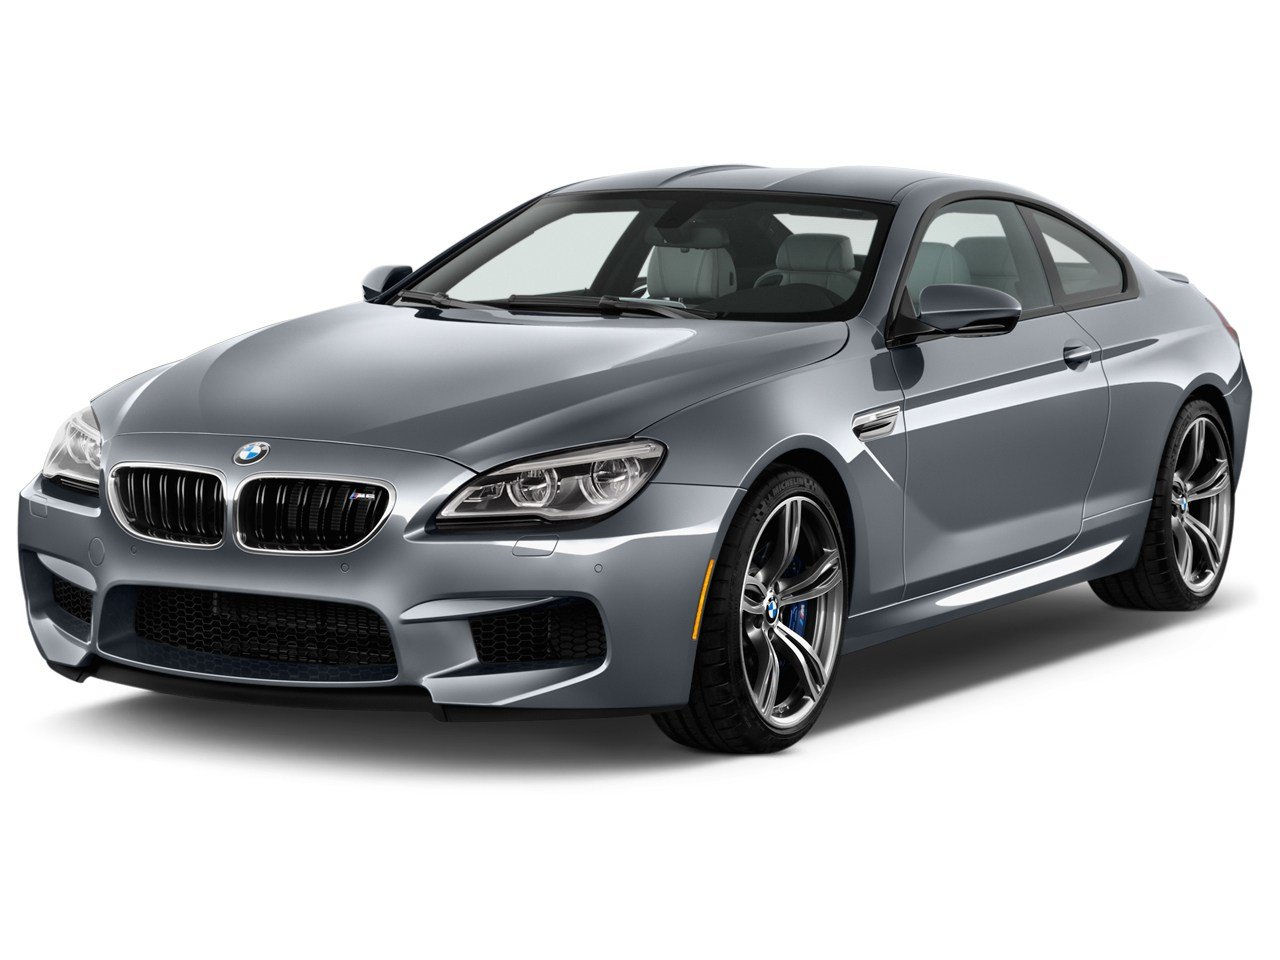 Latest Bmw M6 Coupe 2019 4 4T In Oman New Car Prices Specs Free Download